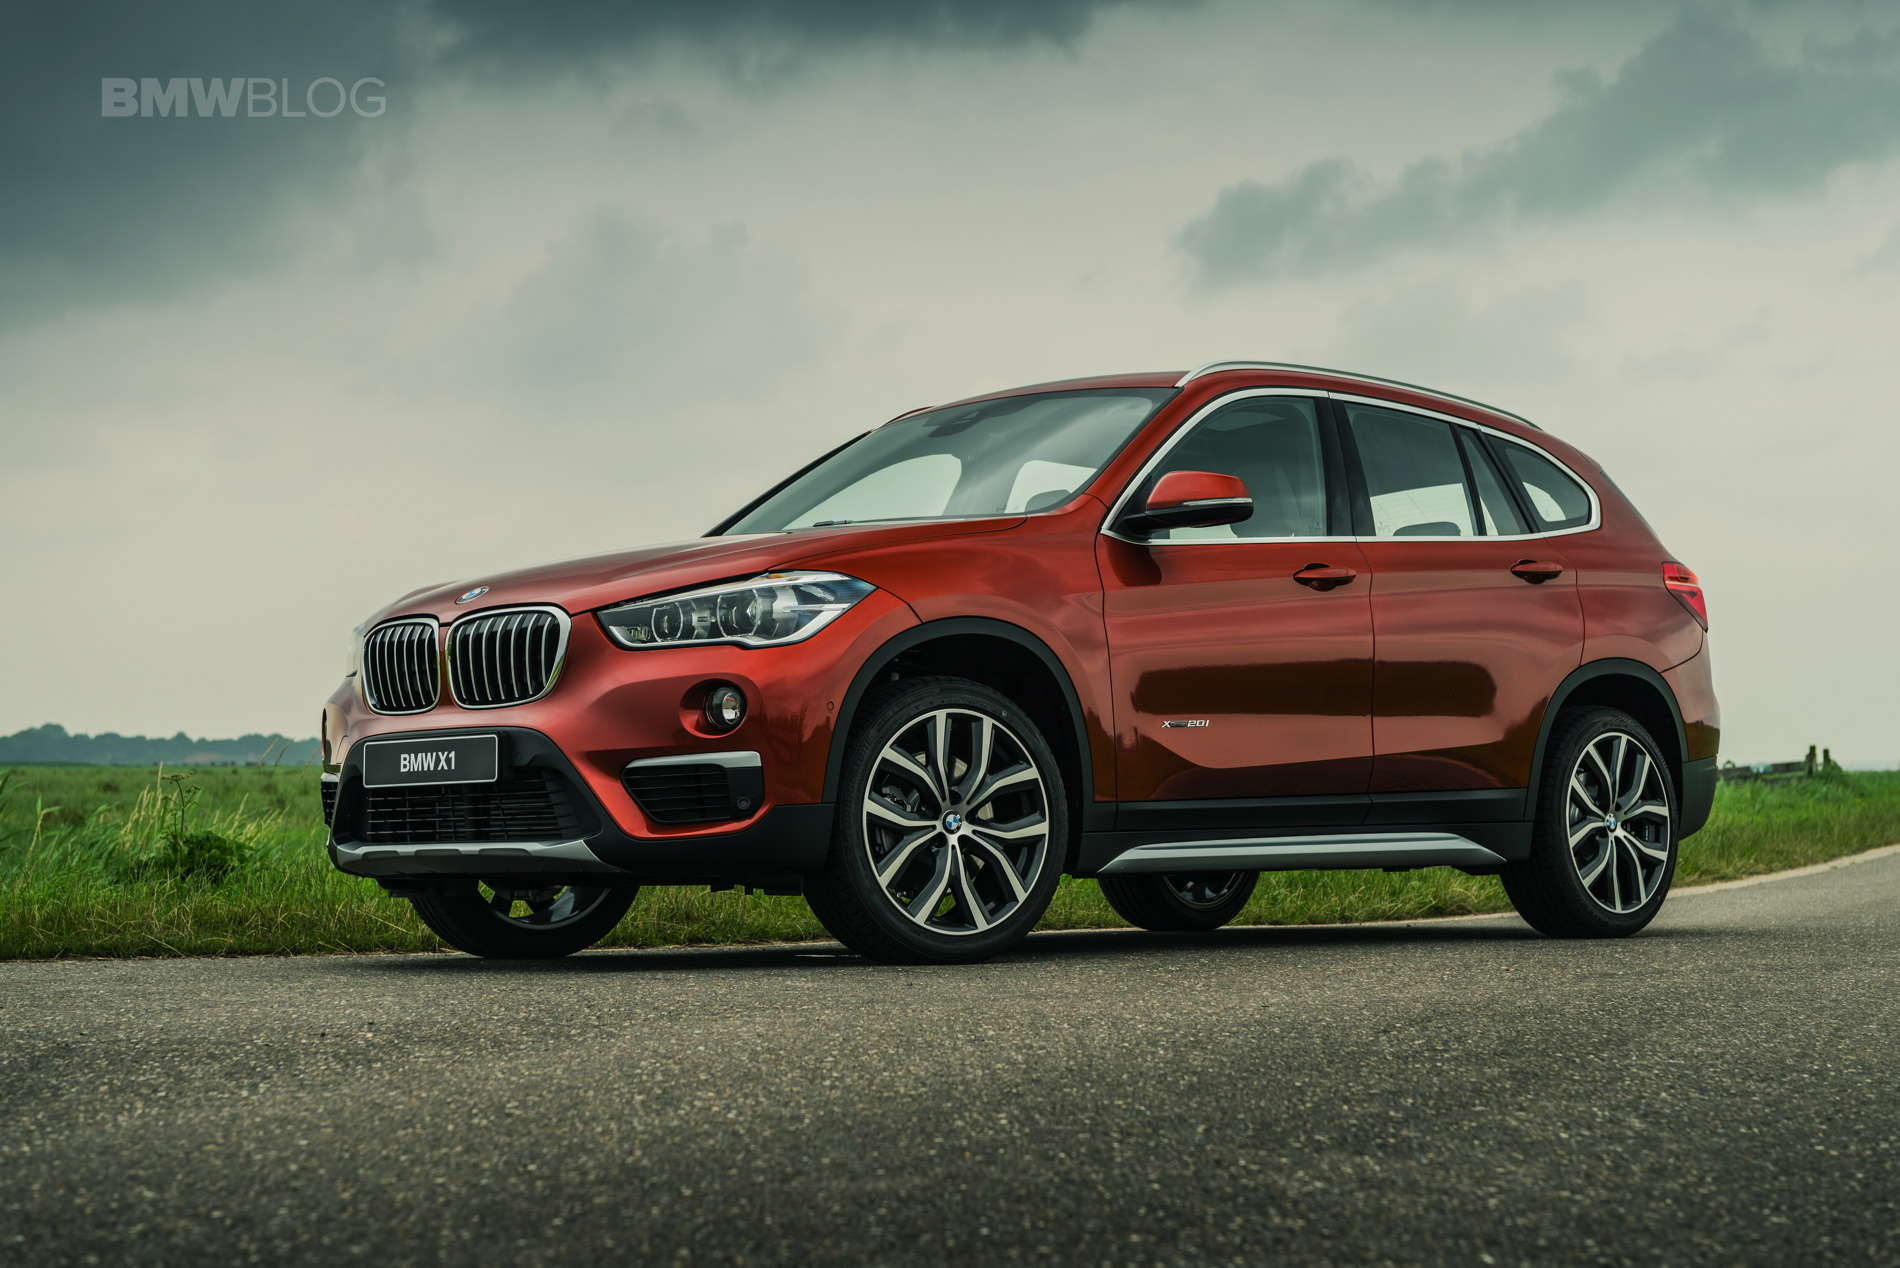 2017 Suv Models >> 2017 BMW X1 Orange Edition: Special model in the Netherlands